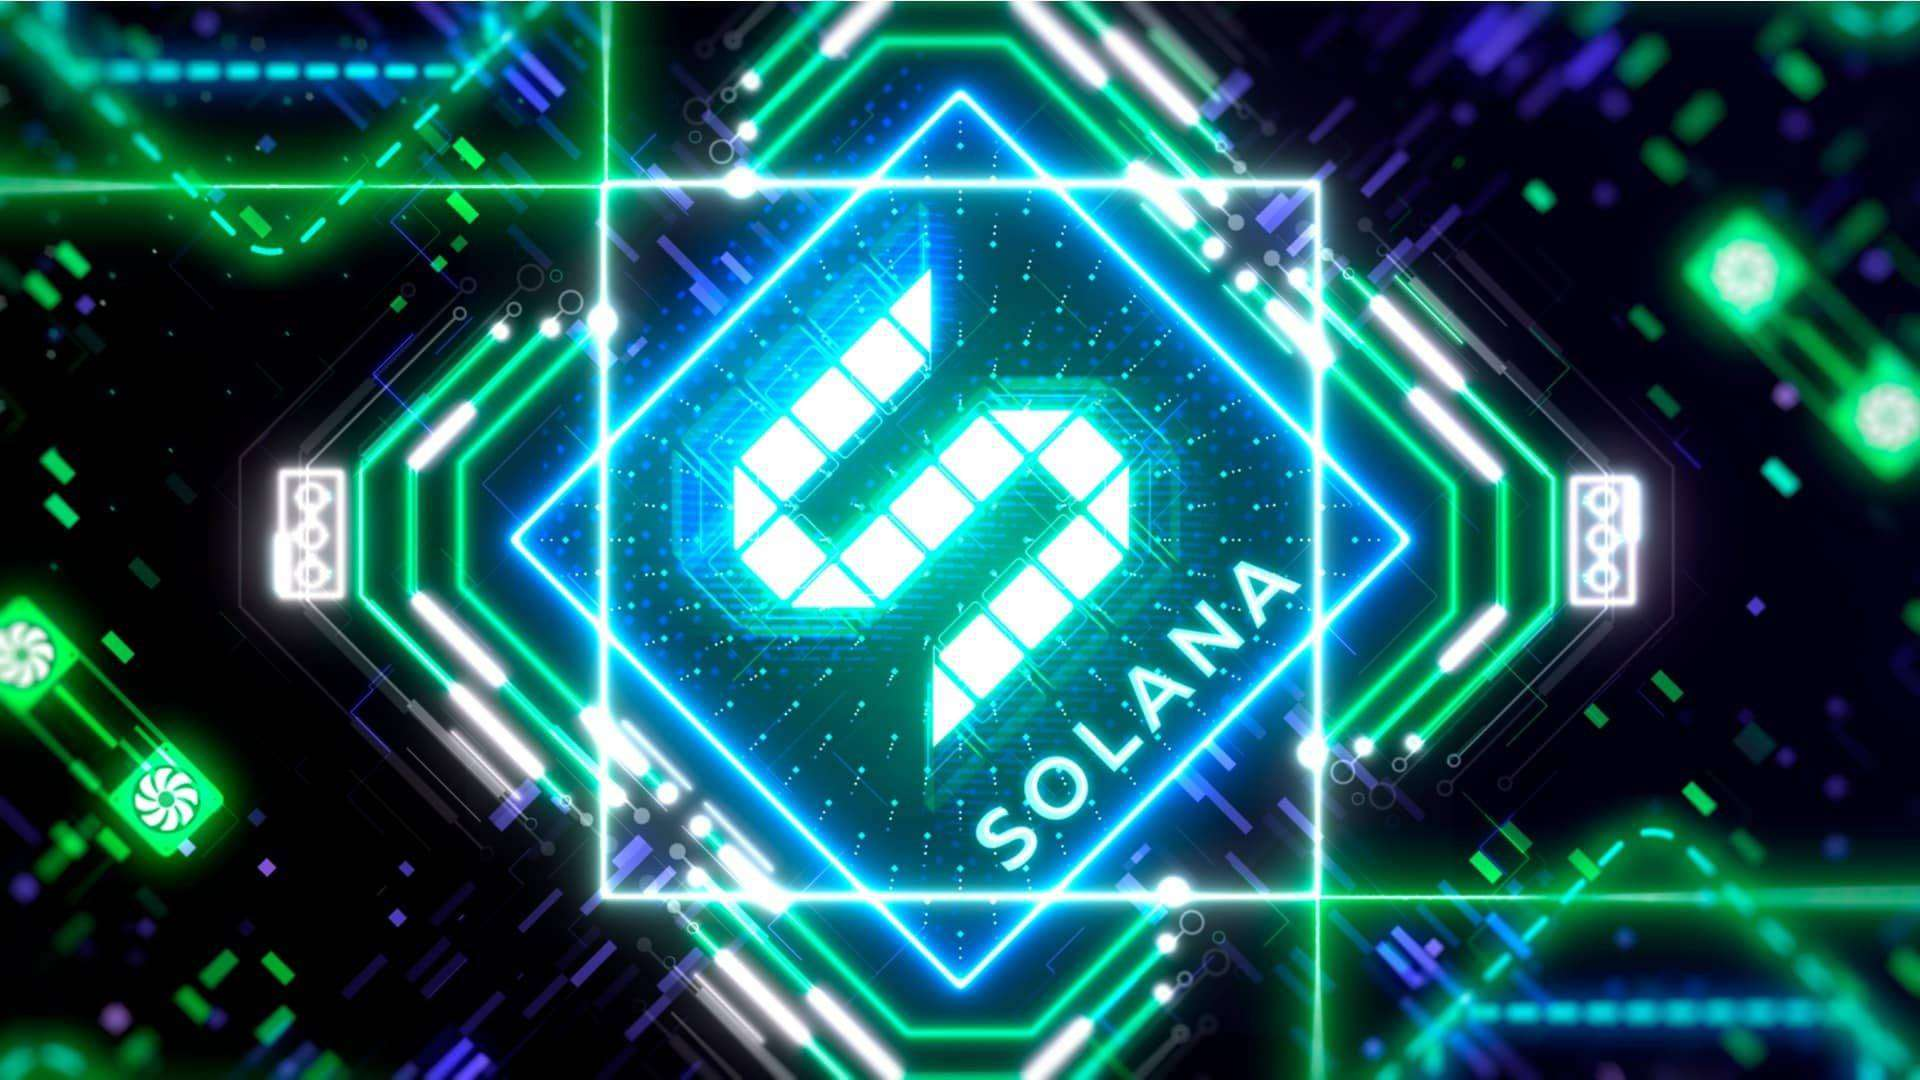 Solana Price Up 13.4% to $30.48 – Where to Buy SOL